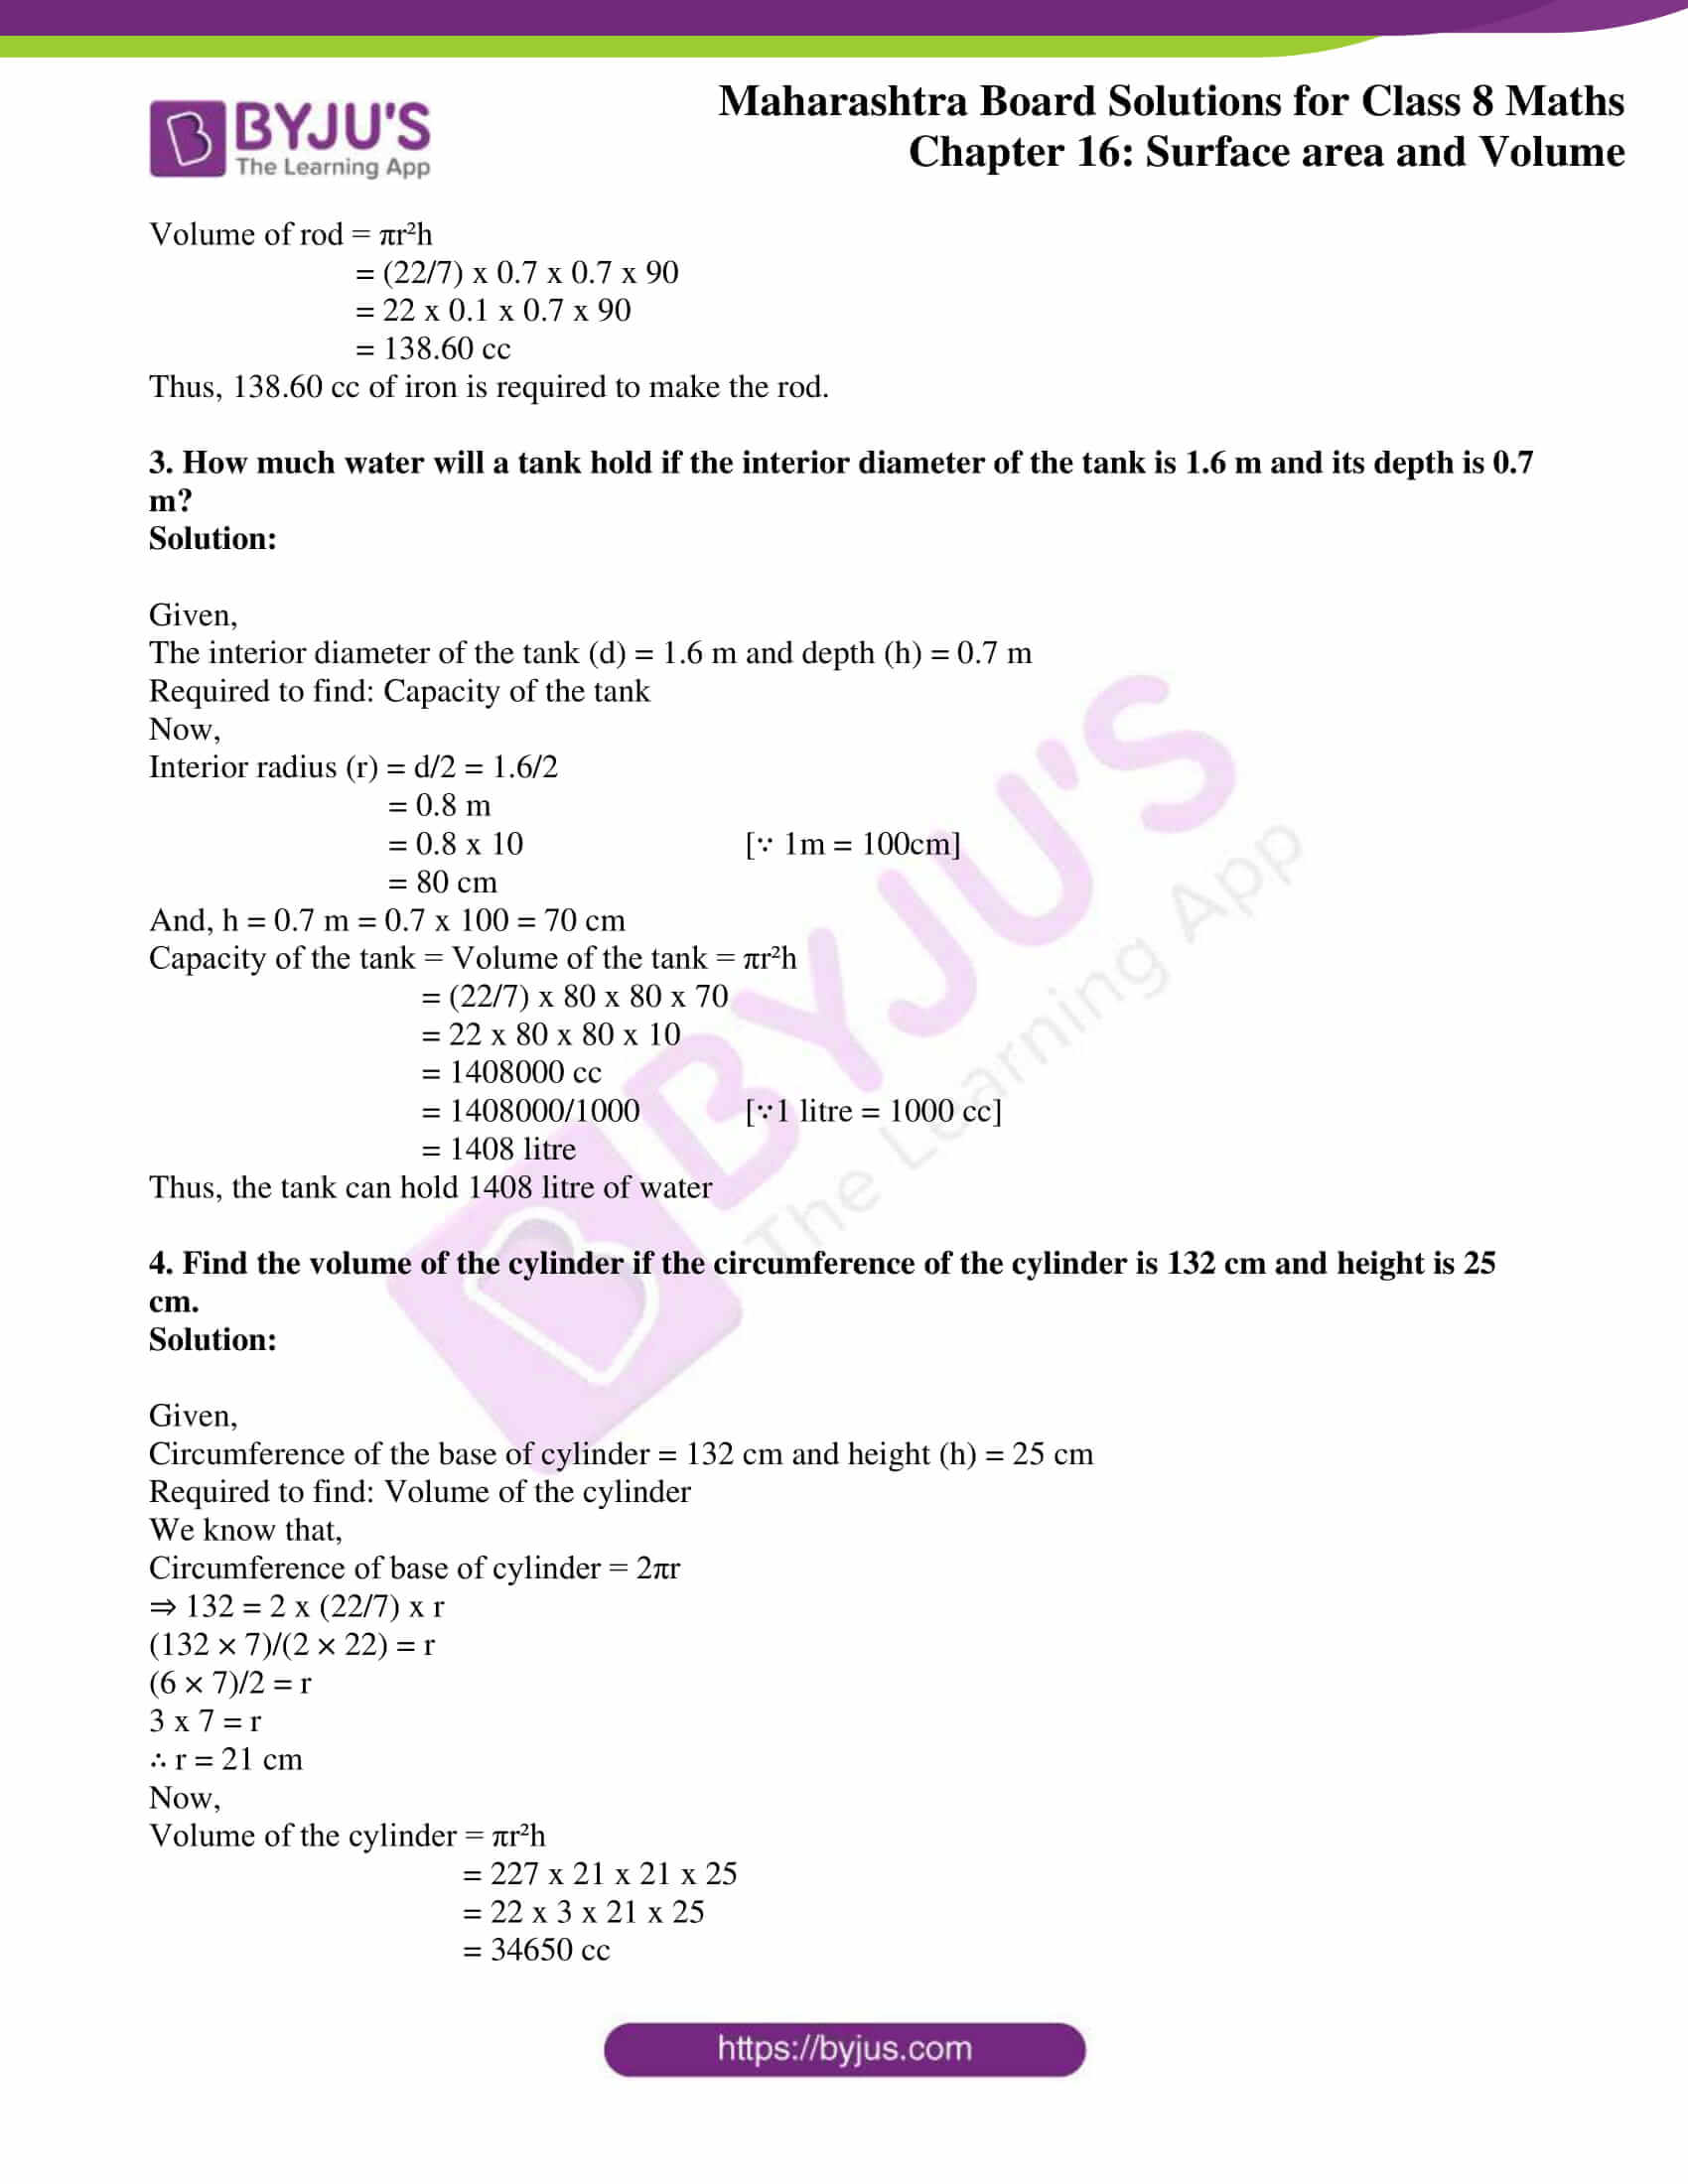 msbshse sol for class 8 maths chapter 16 8